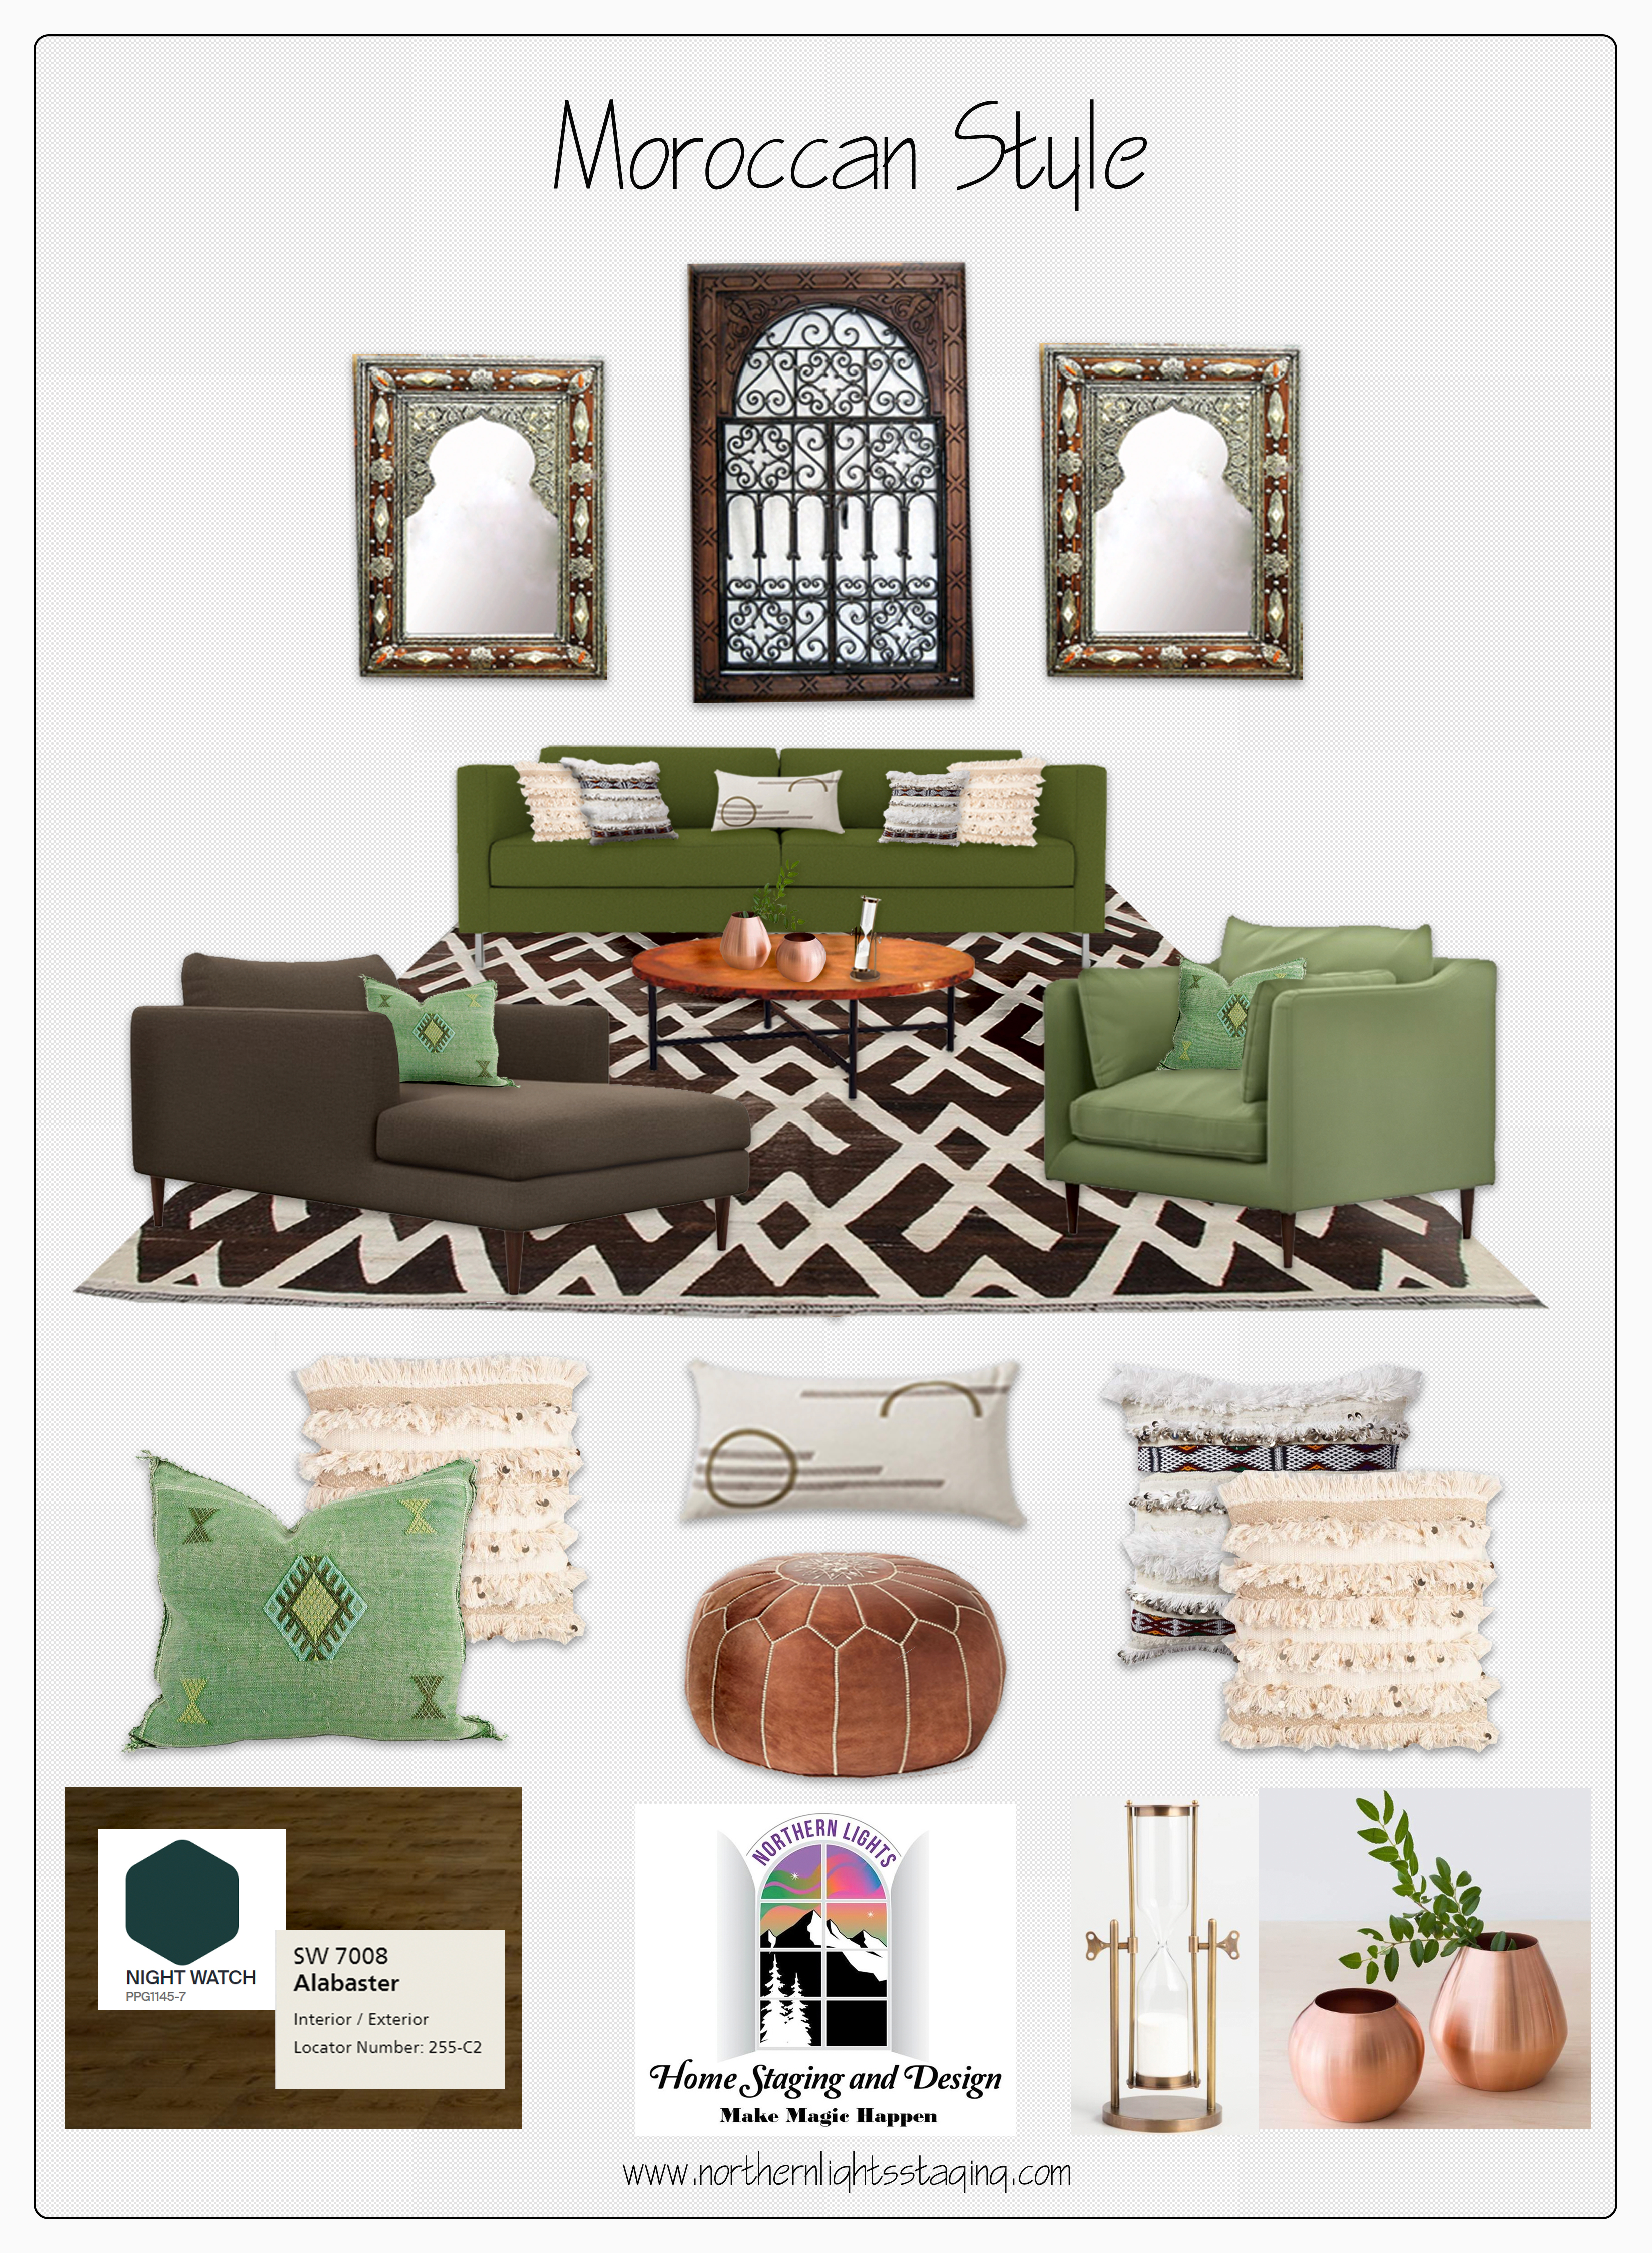 Edesign Portfolio Northern Lights Home Staging And Design